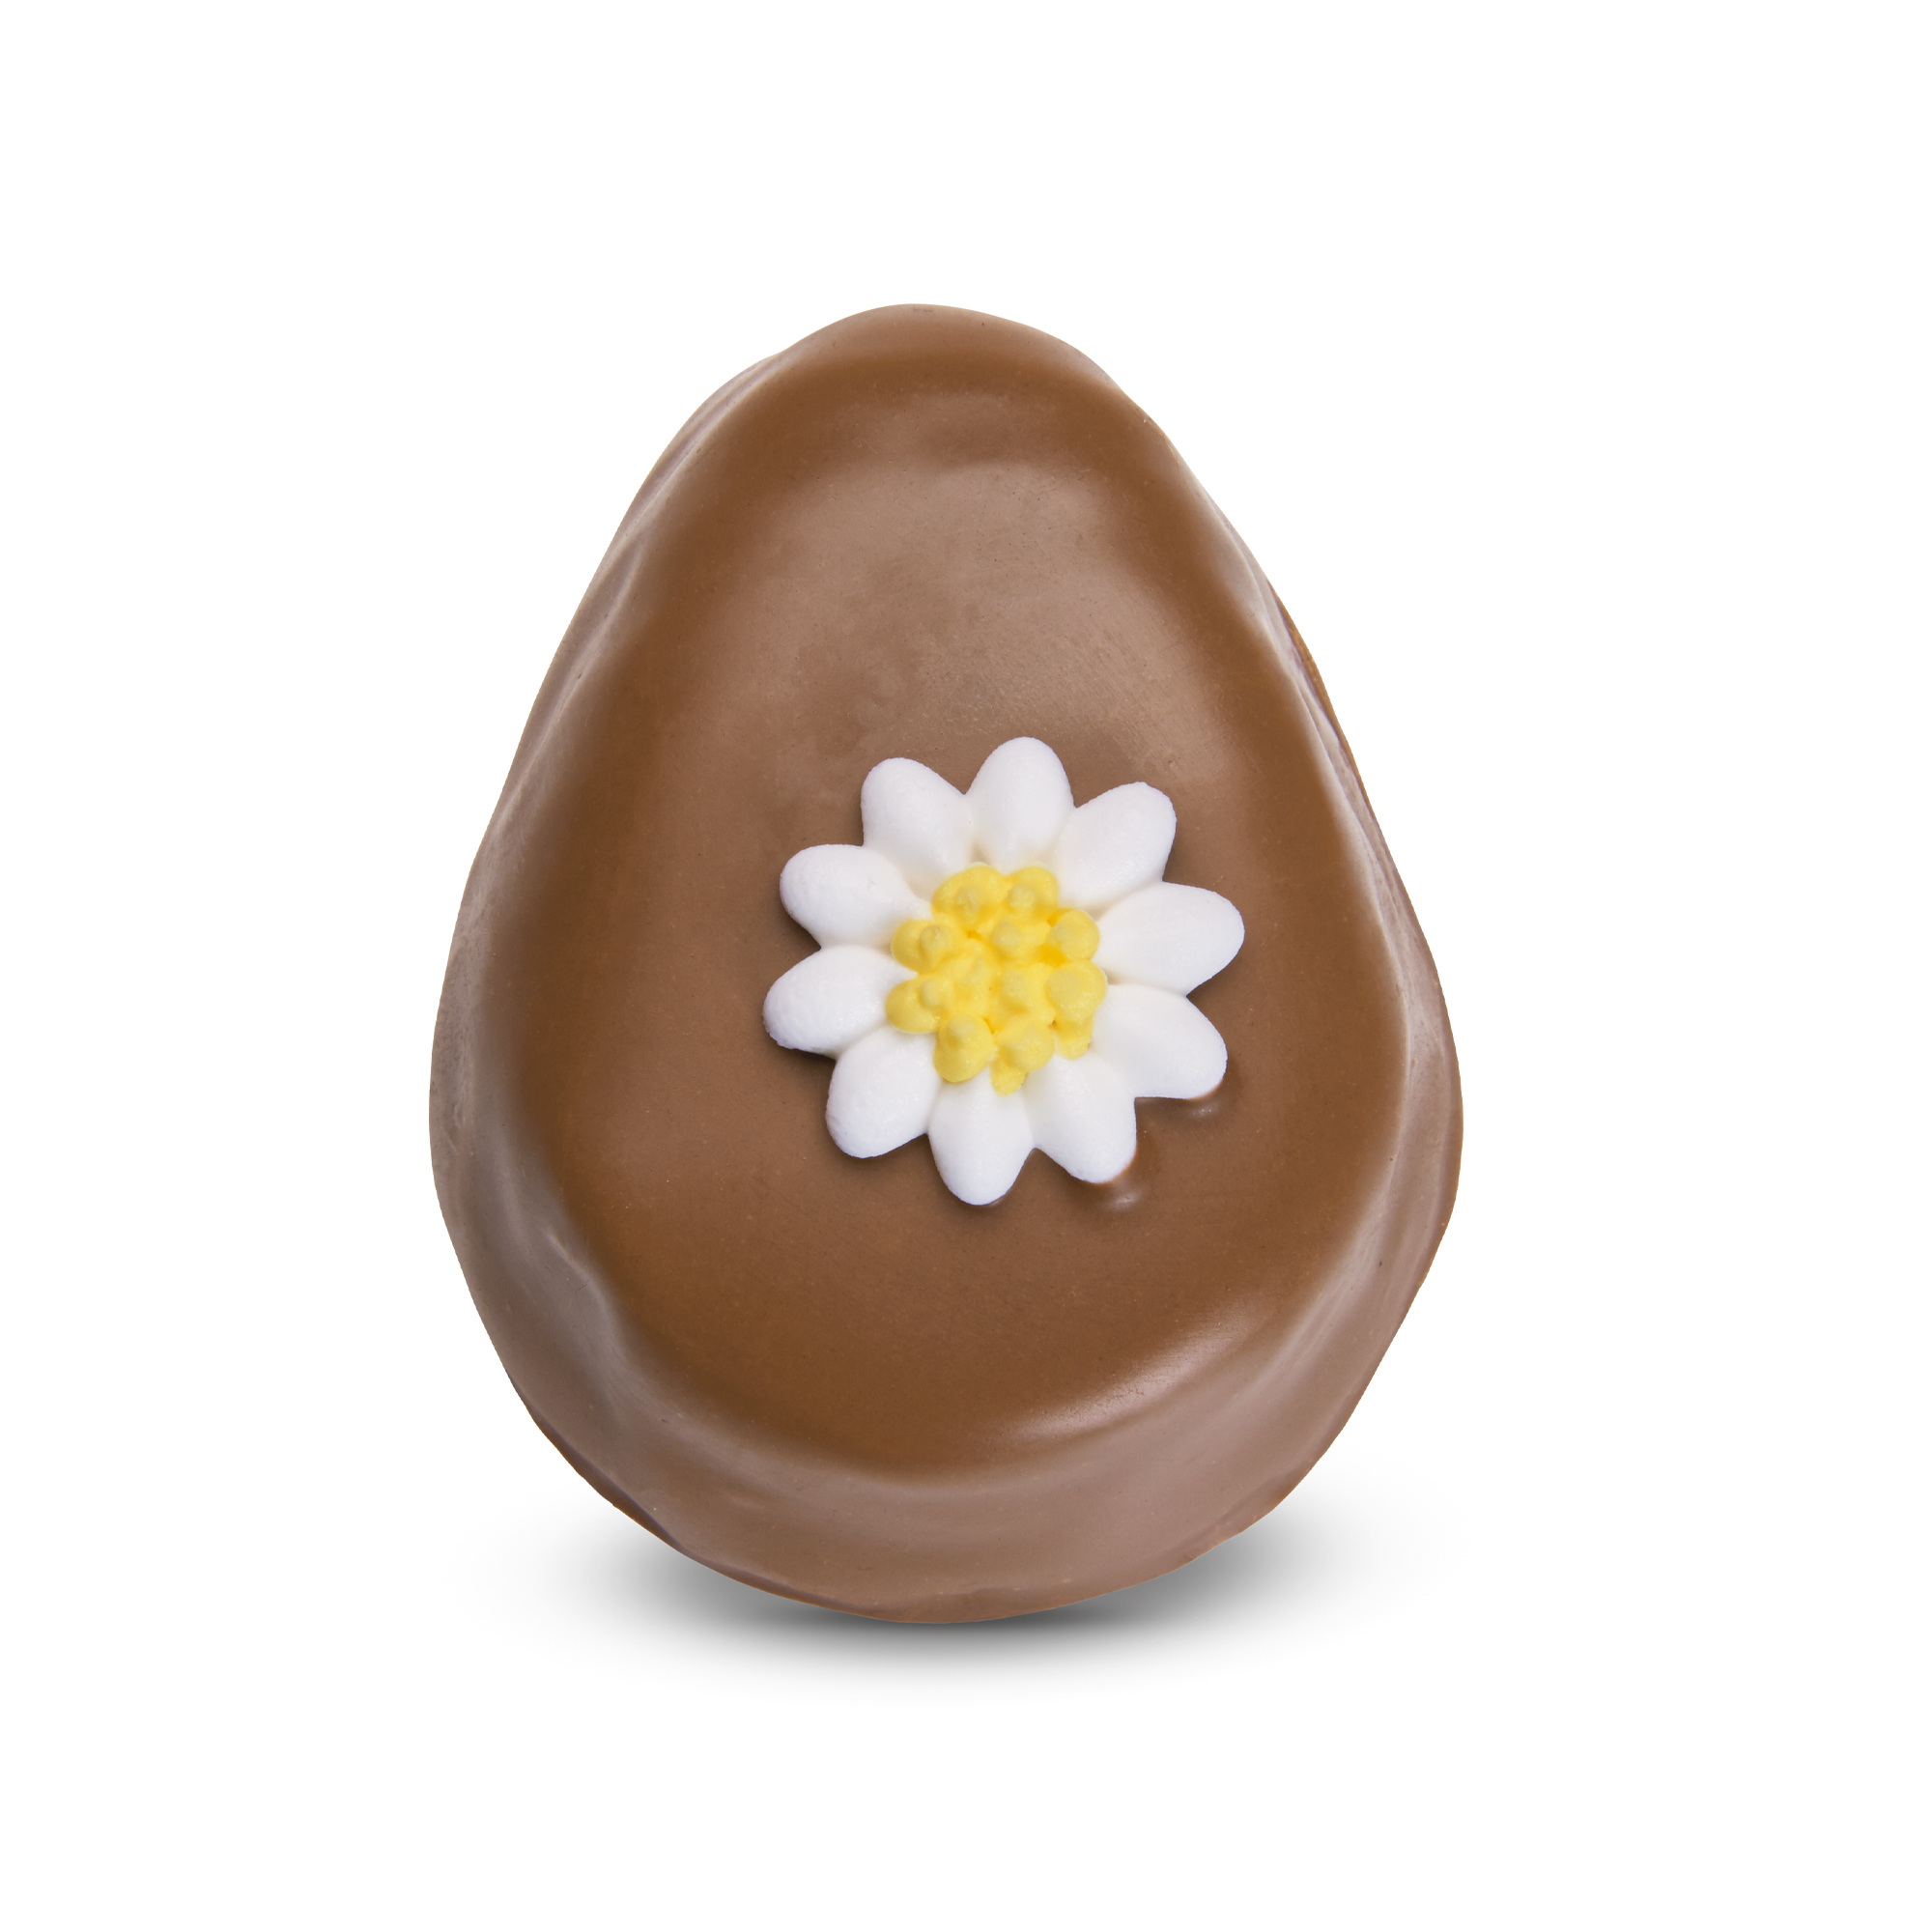 Chocolate Butter Egg product view